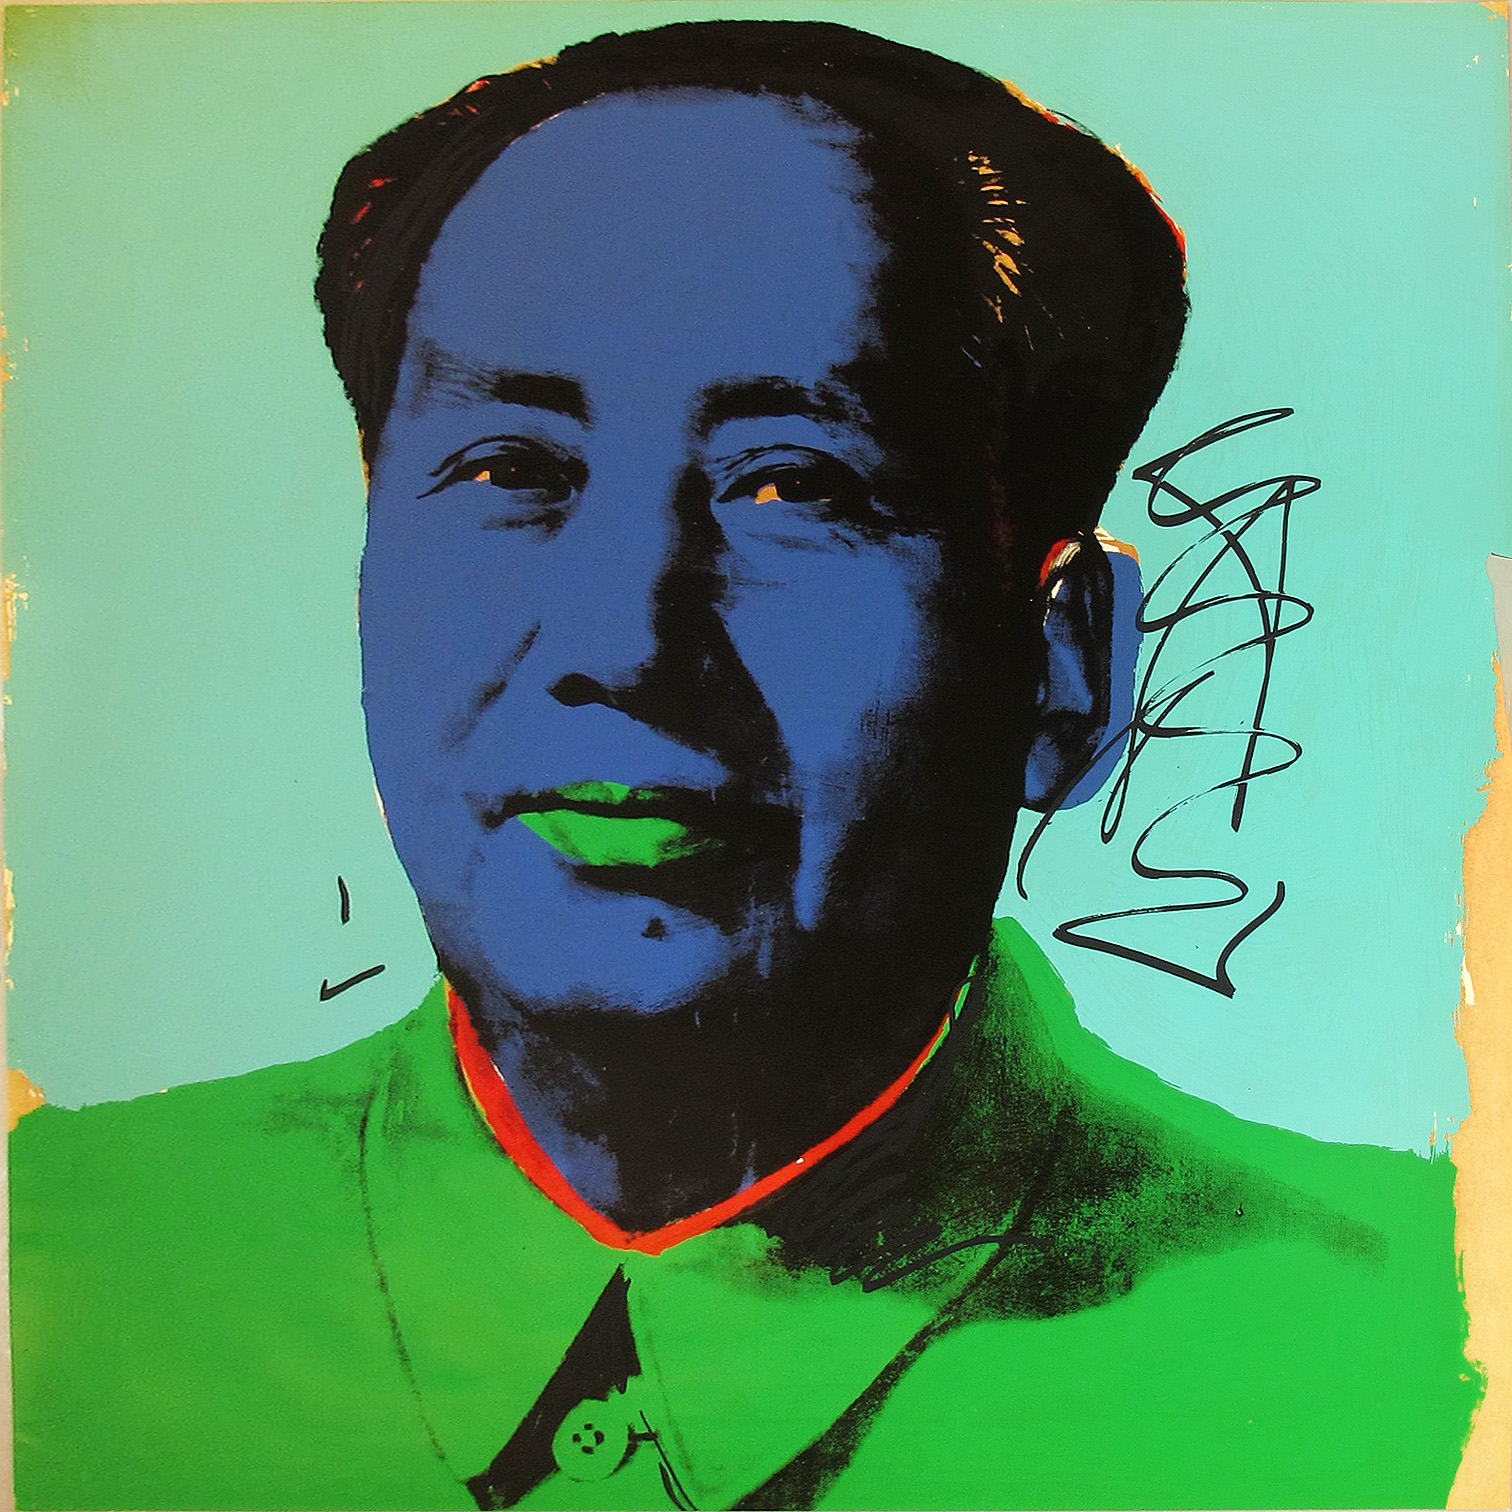 Andy Warhol | Mao 99 | 1972 | Image of Artists' work.